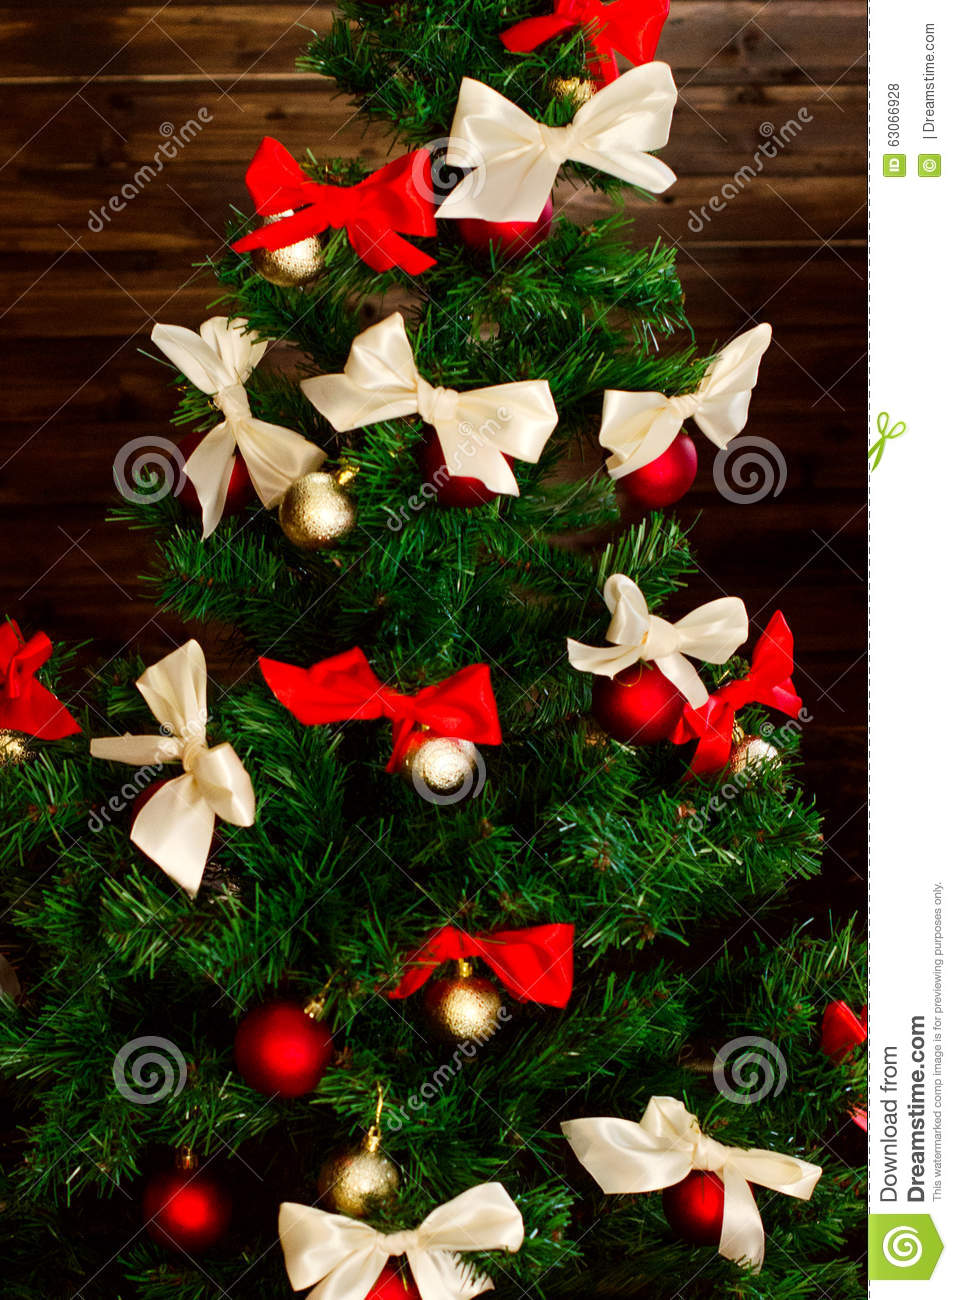 Christmas Tree Bows Red.Smart Christmas Tree Decorated With Red And Cream Colored